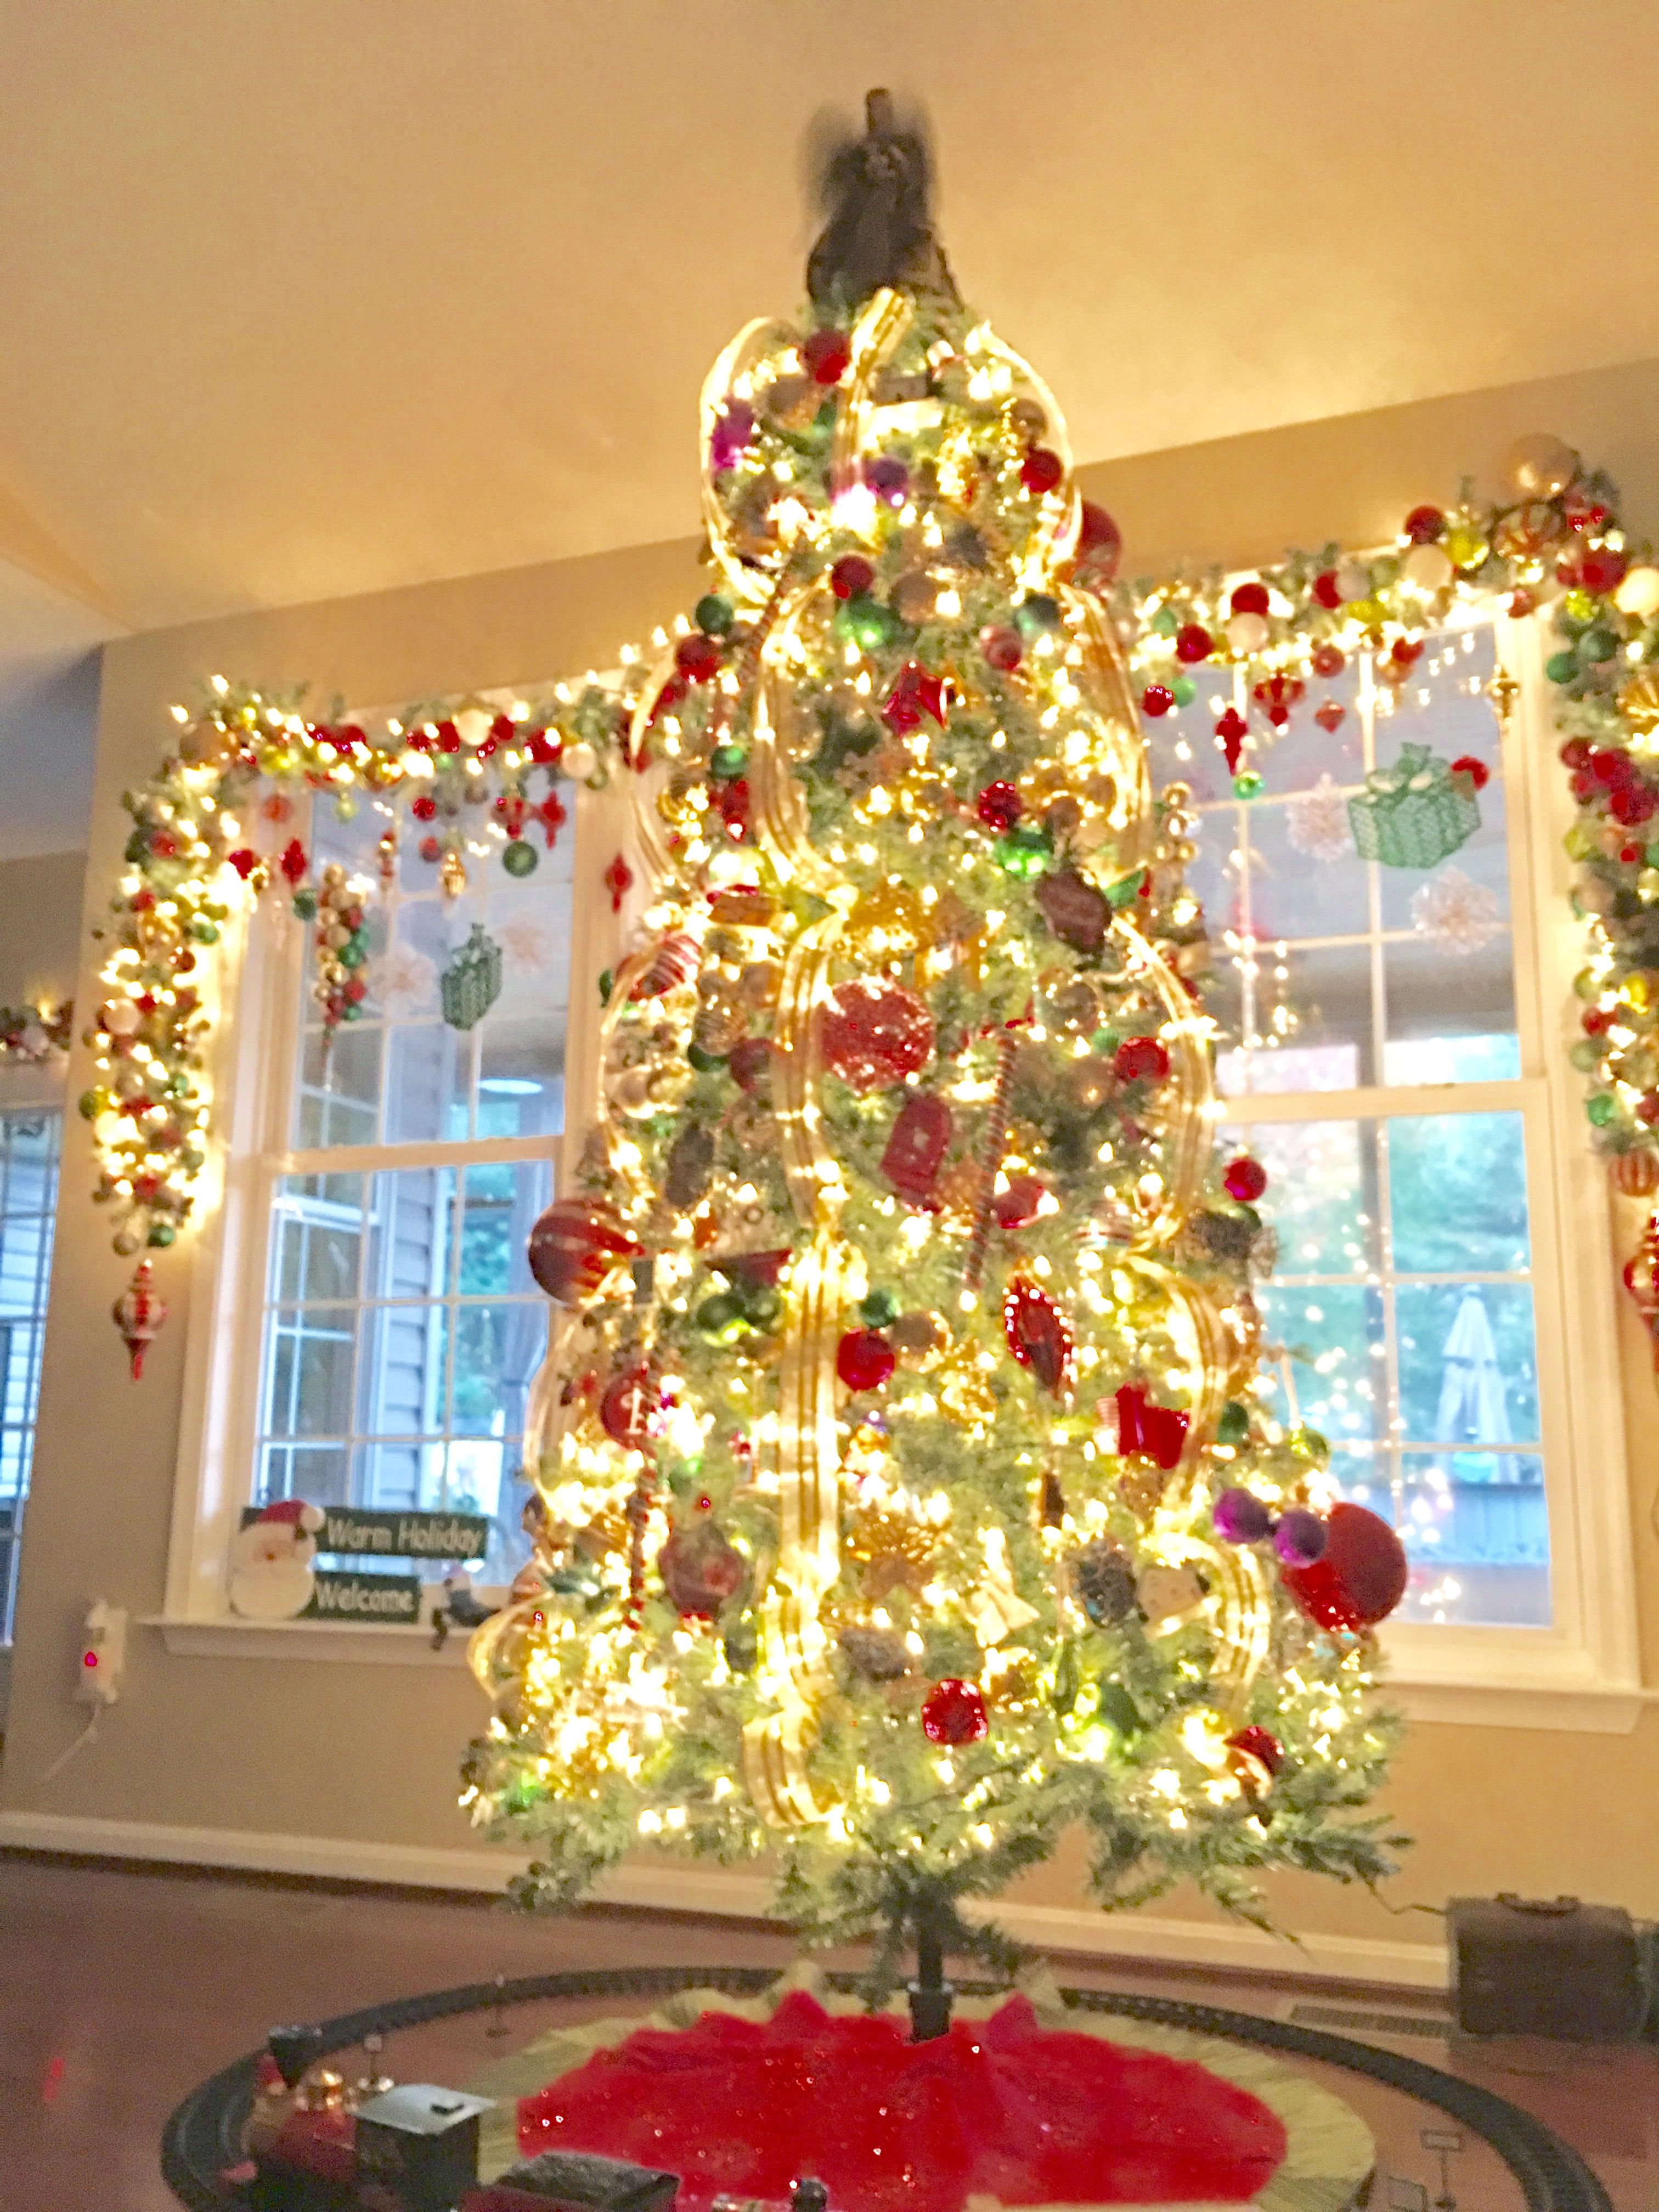 Christmas Tree with Vertical Ribbon Christmas Garland on Window